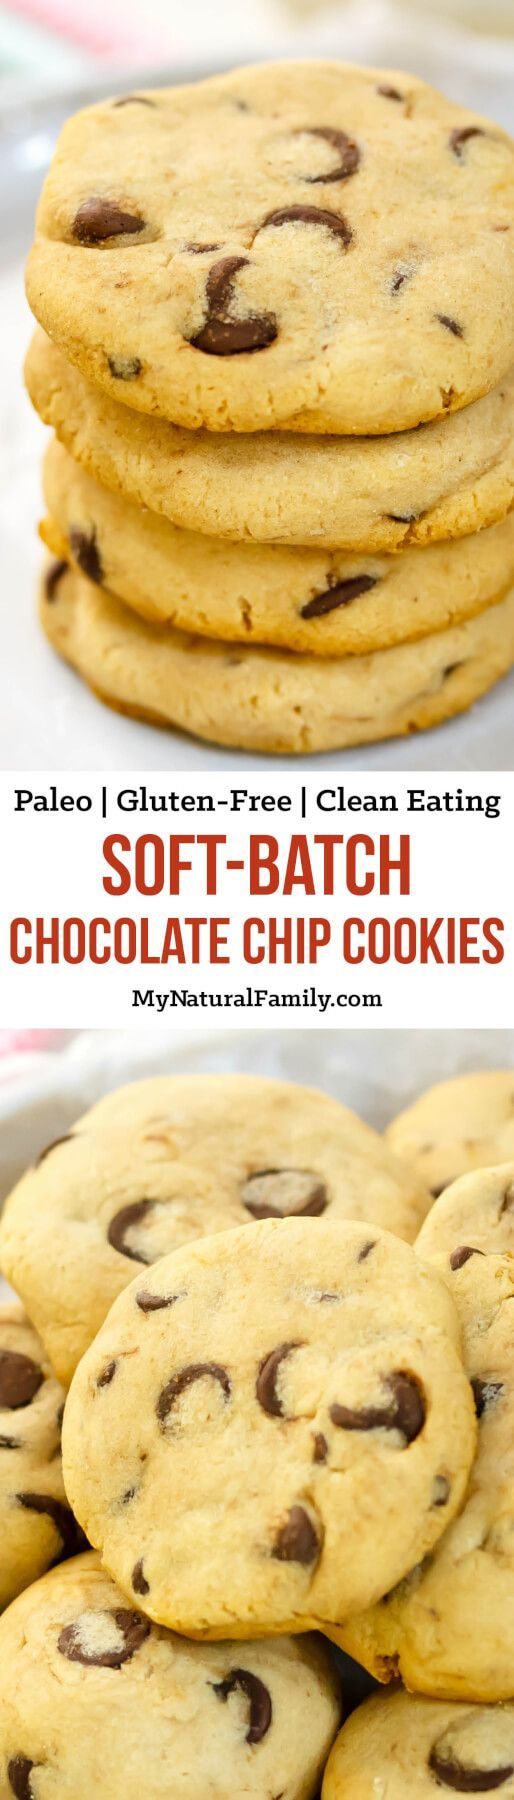 These are the softest Paleo chocolate chip cookies I have ever tried. My children love them and I love that they are healthy!